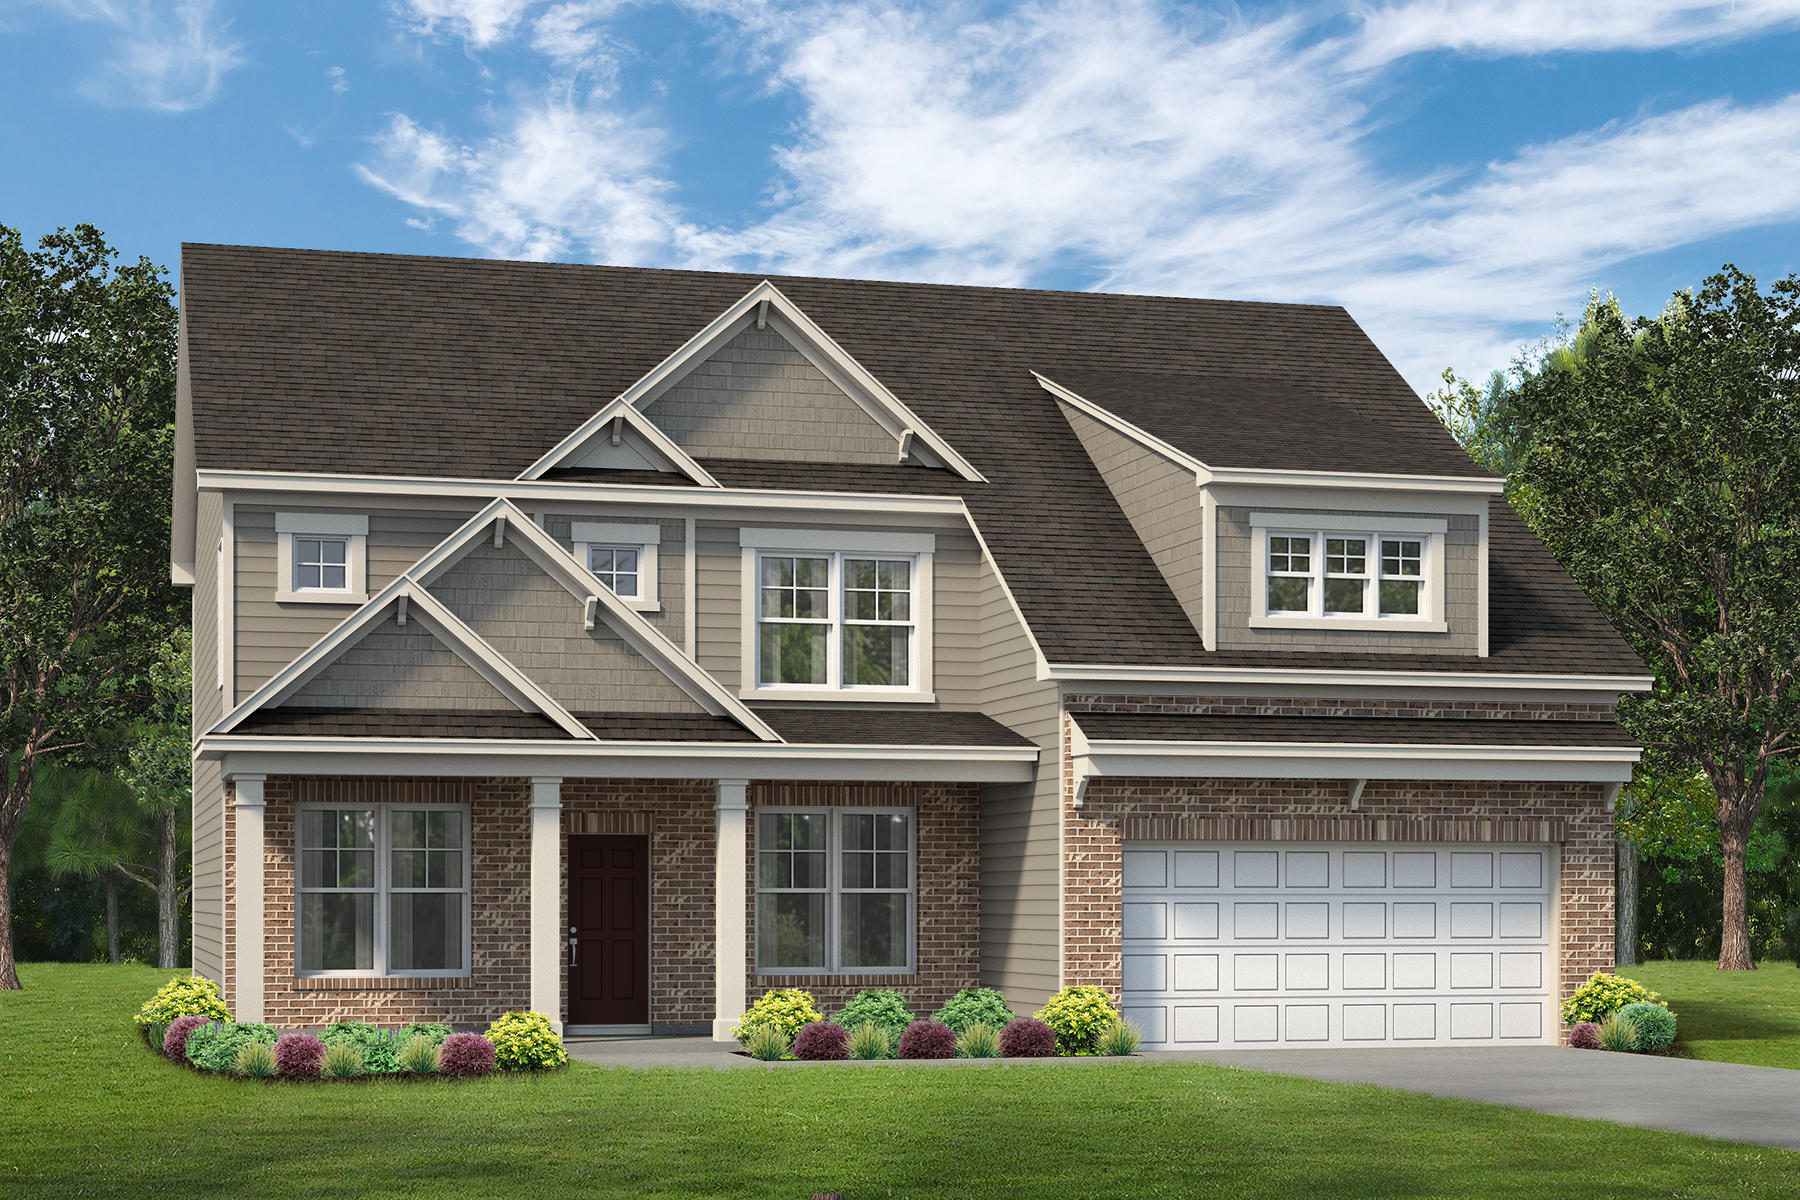 Kerley Family Homes Westbrook Model Home